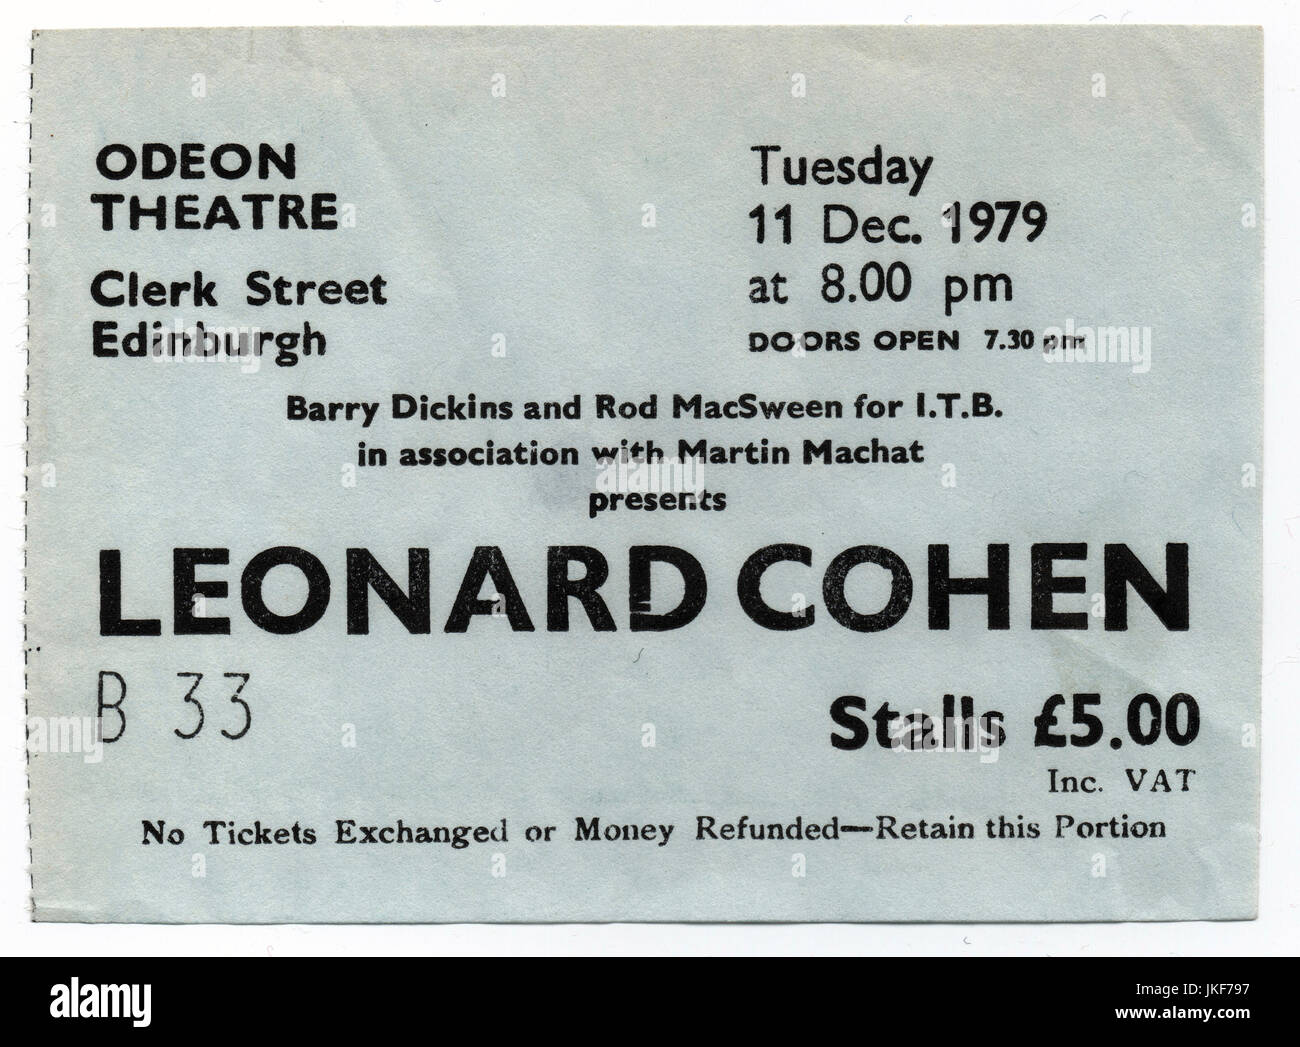 Ticket stub for a Leonard Cohen concert at the Odeon Theatre in Edinburgh, 11th December 1979. - Stock Image